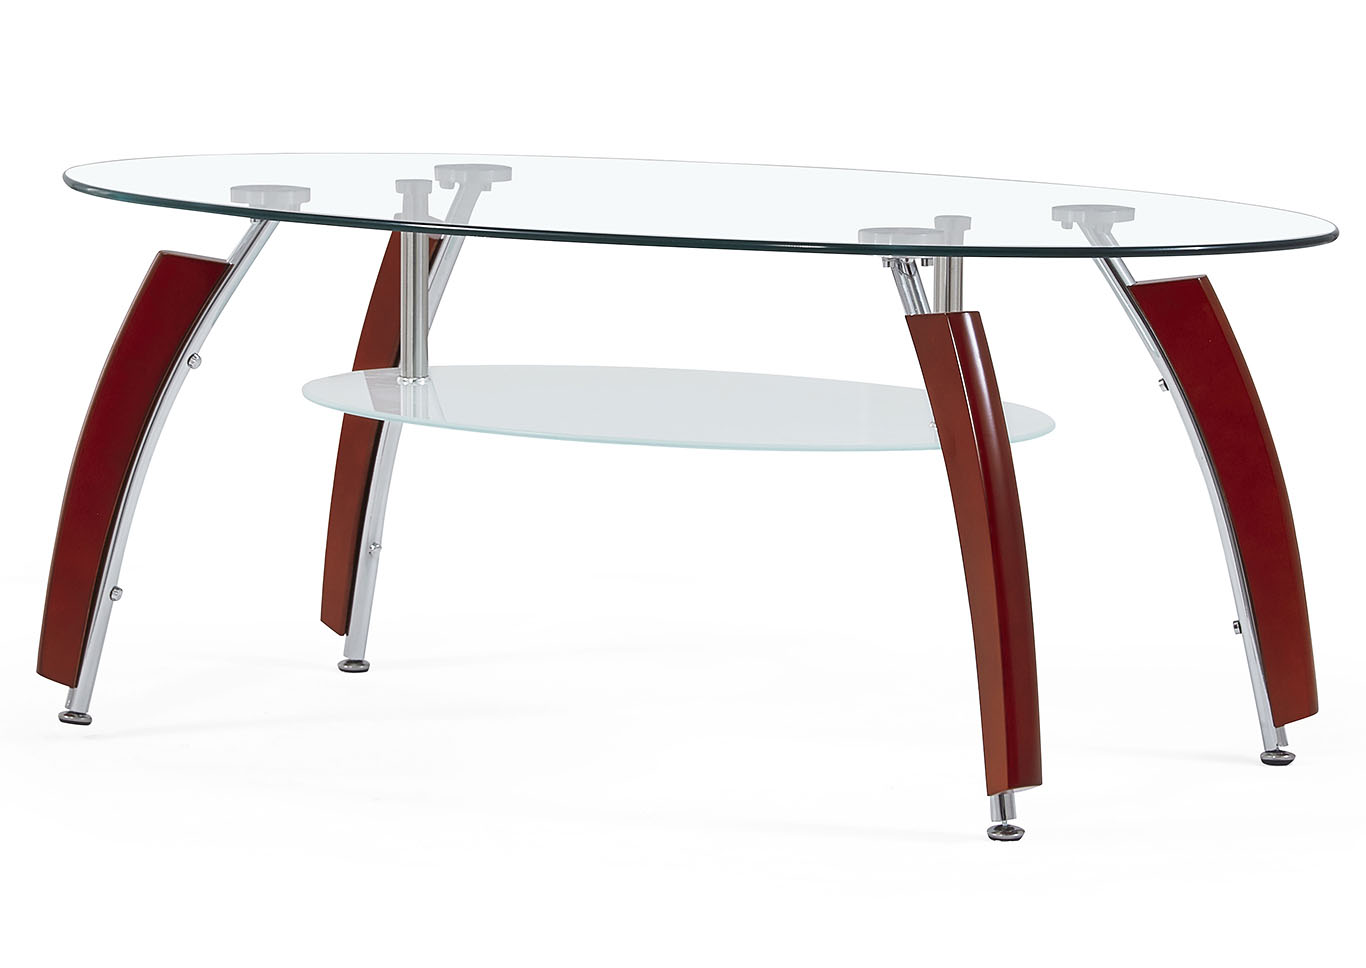 Fabulous Central Furniture Mart Mahogany Coffee Table Cjindustries Chair Design For Home Cjindustriesco